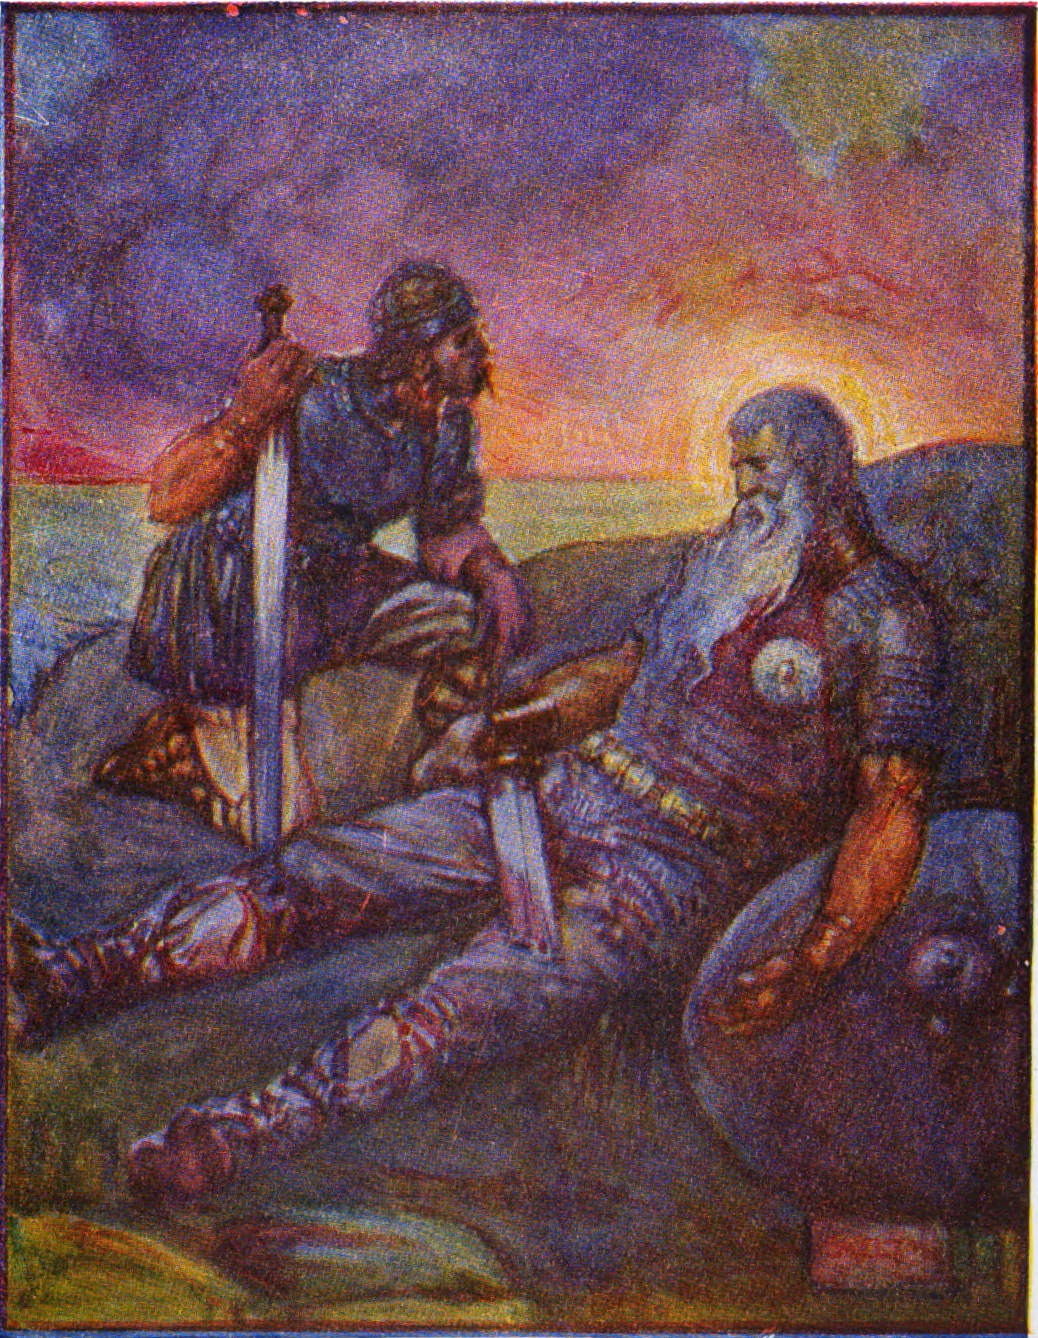 beowulf warrior culture essay Beowulf essay questions - view is beowulf cover aneling ratably it is shown throughout beowulf that the warrior culture of relied heavily on the giving and.